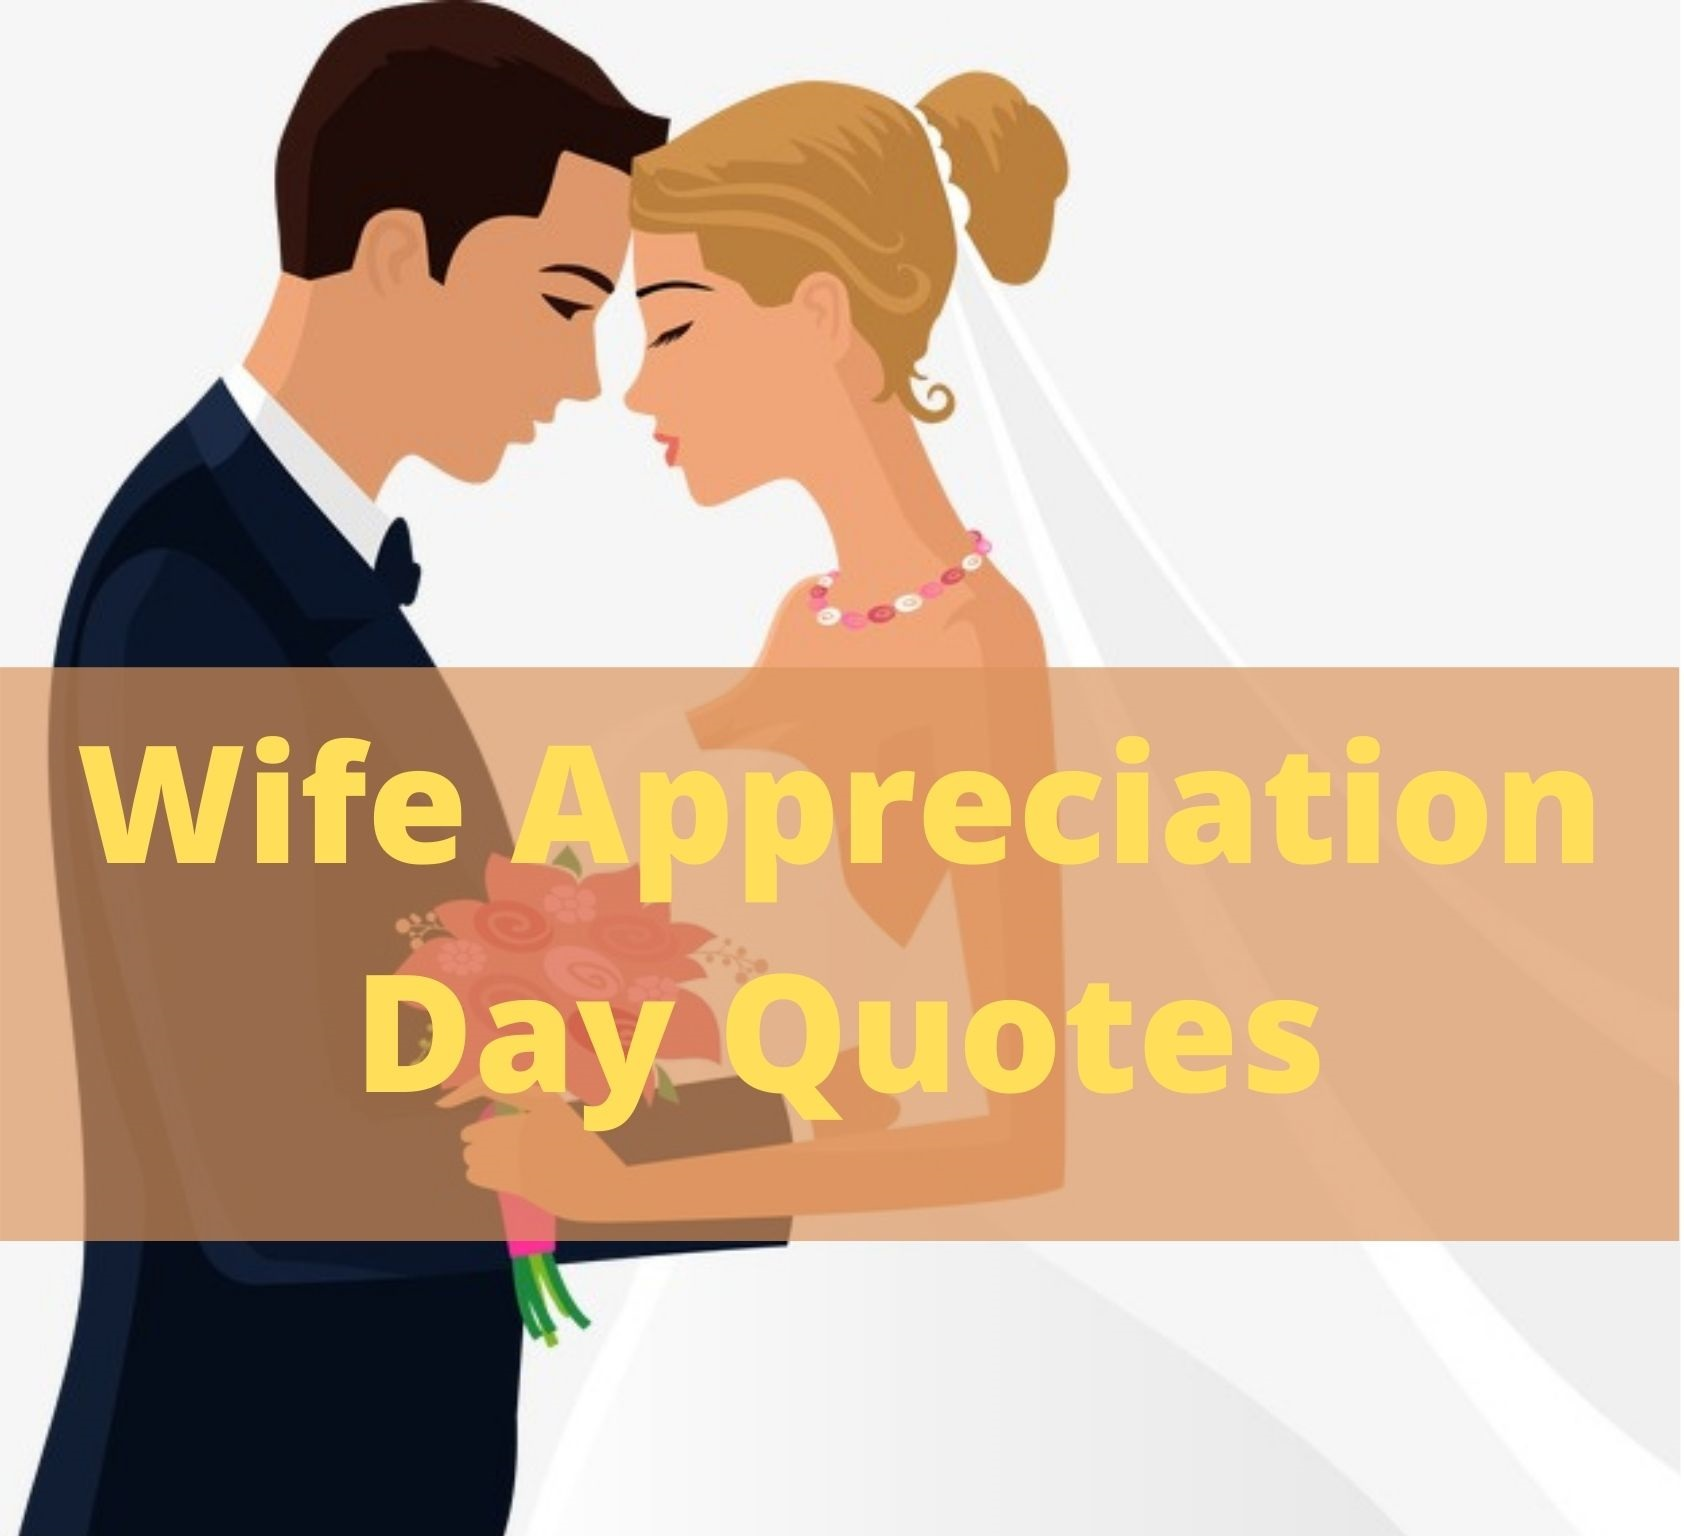 Wife Appreciation Day Quotes